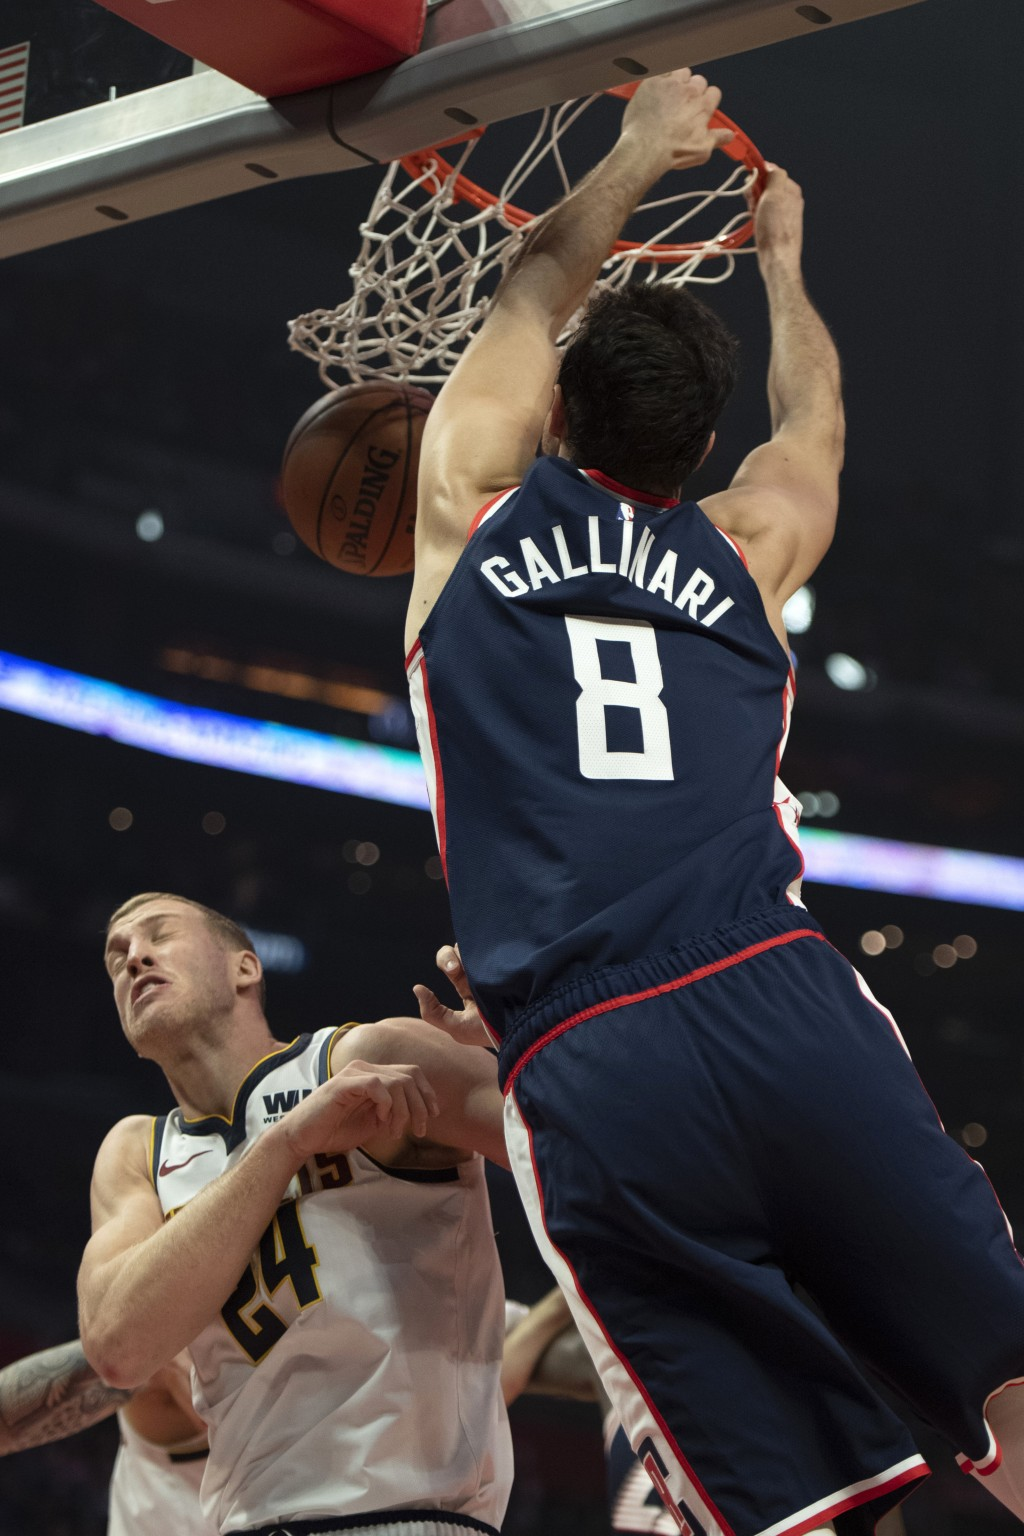 Los Angeles Clippers forward Danilo Gallinari, right, dunks over Denver Nuggets forward Mason Plumlee during the first half of an NBA basketball game